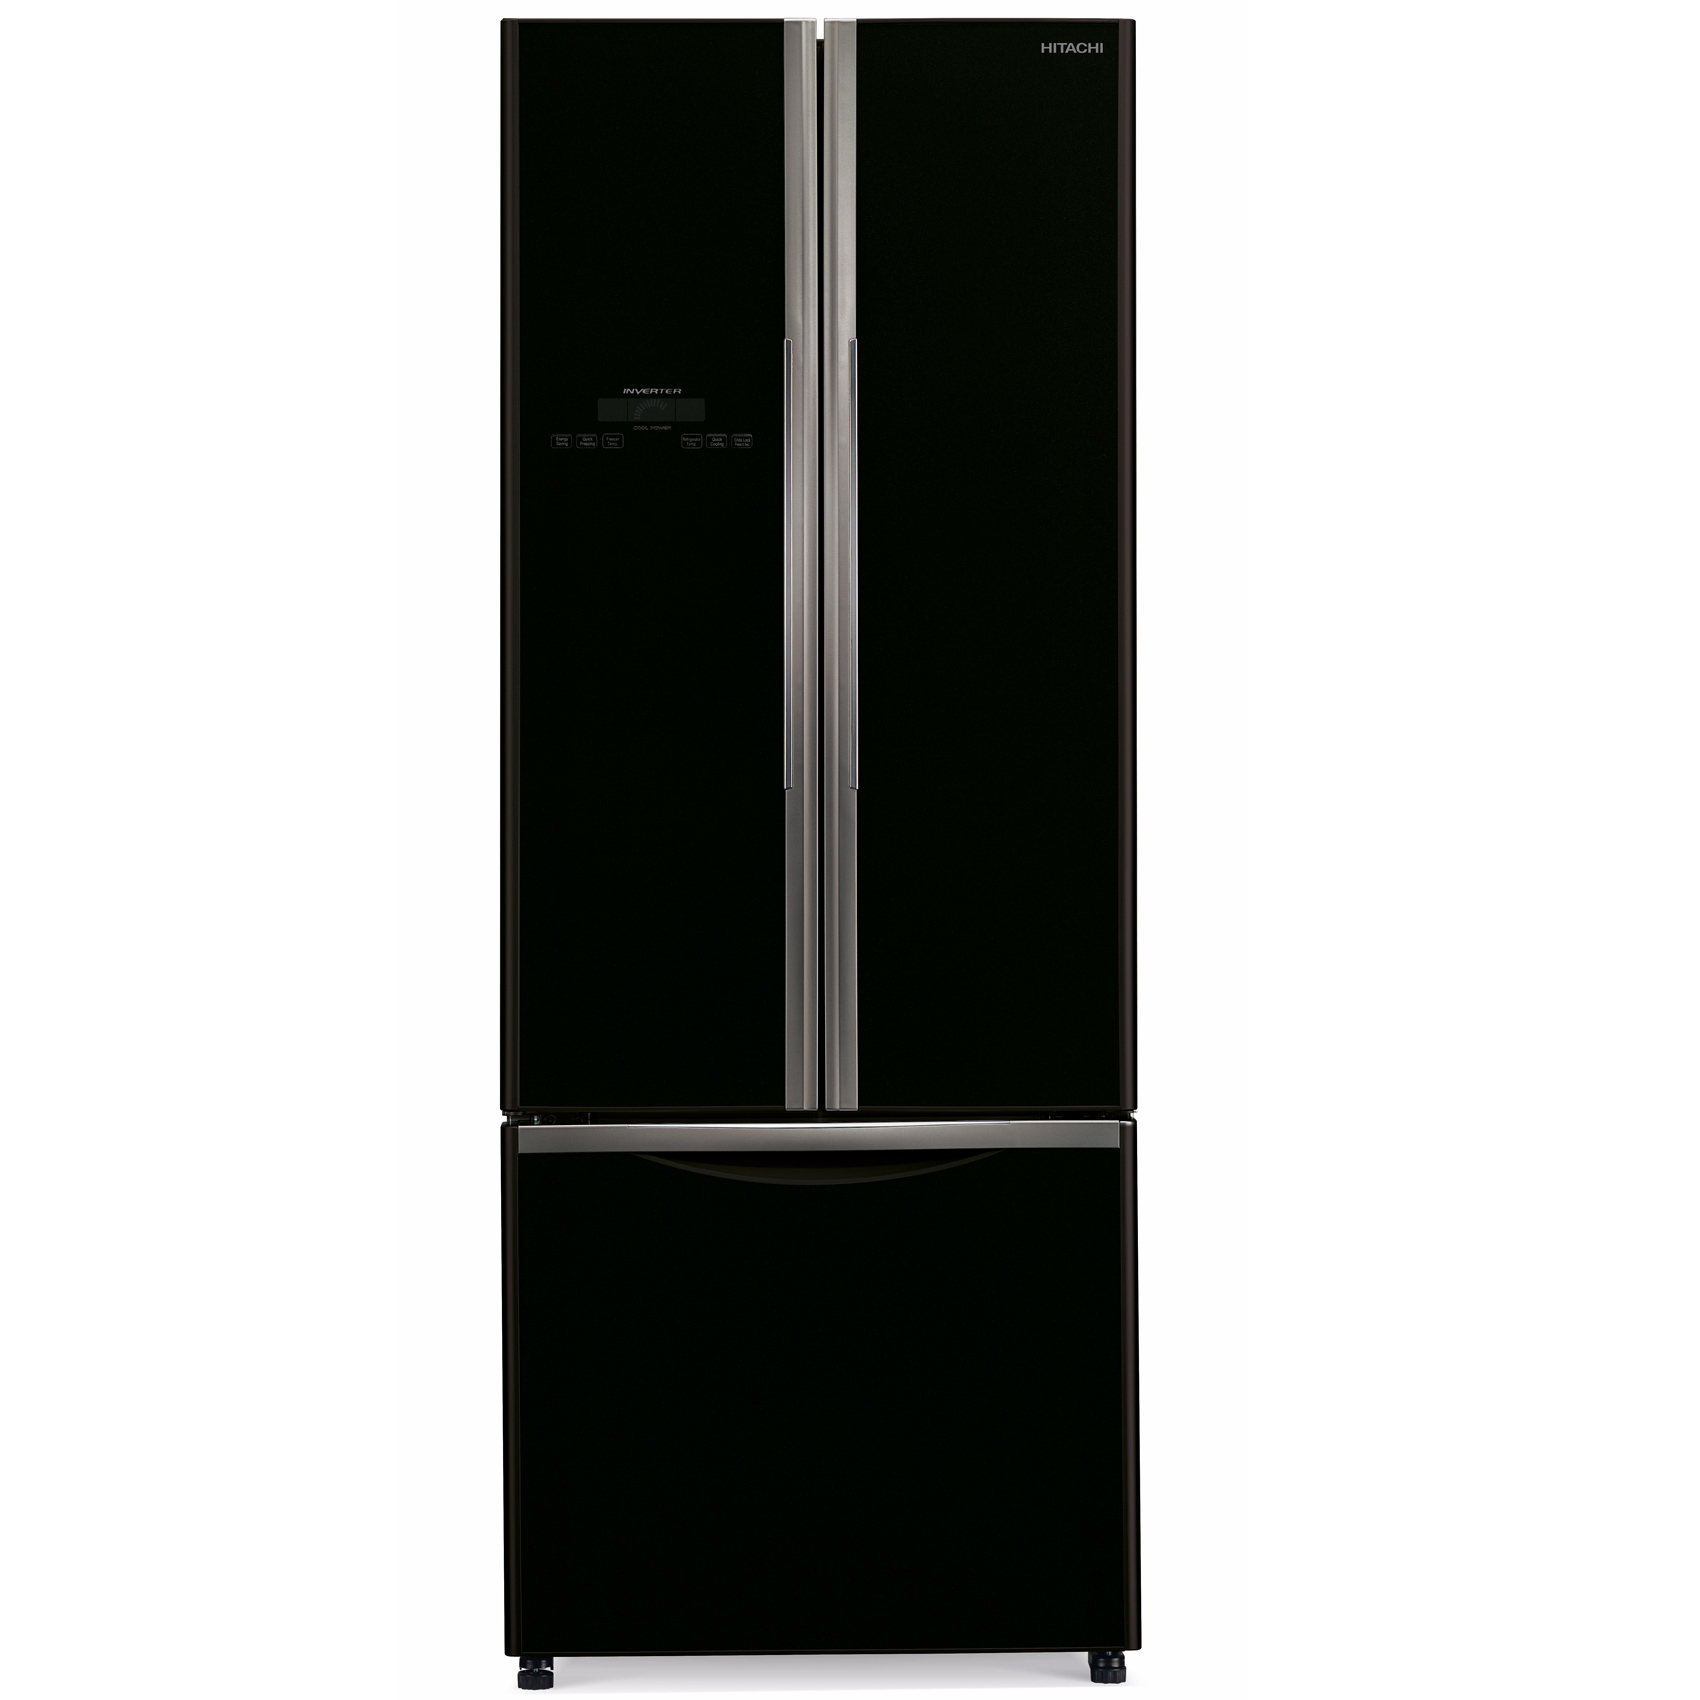 HITACHI FRIDGE RWB550PUK2 660L